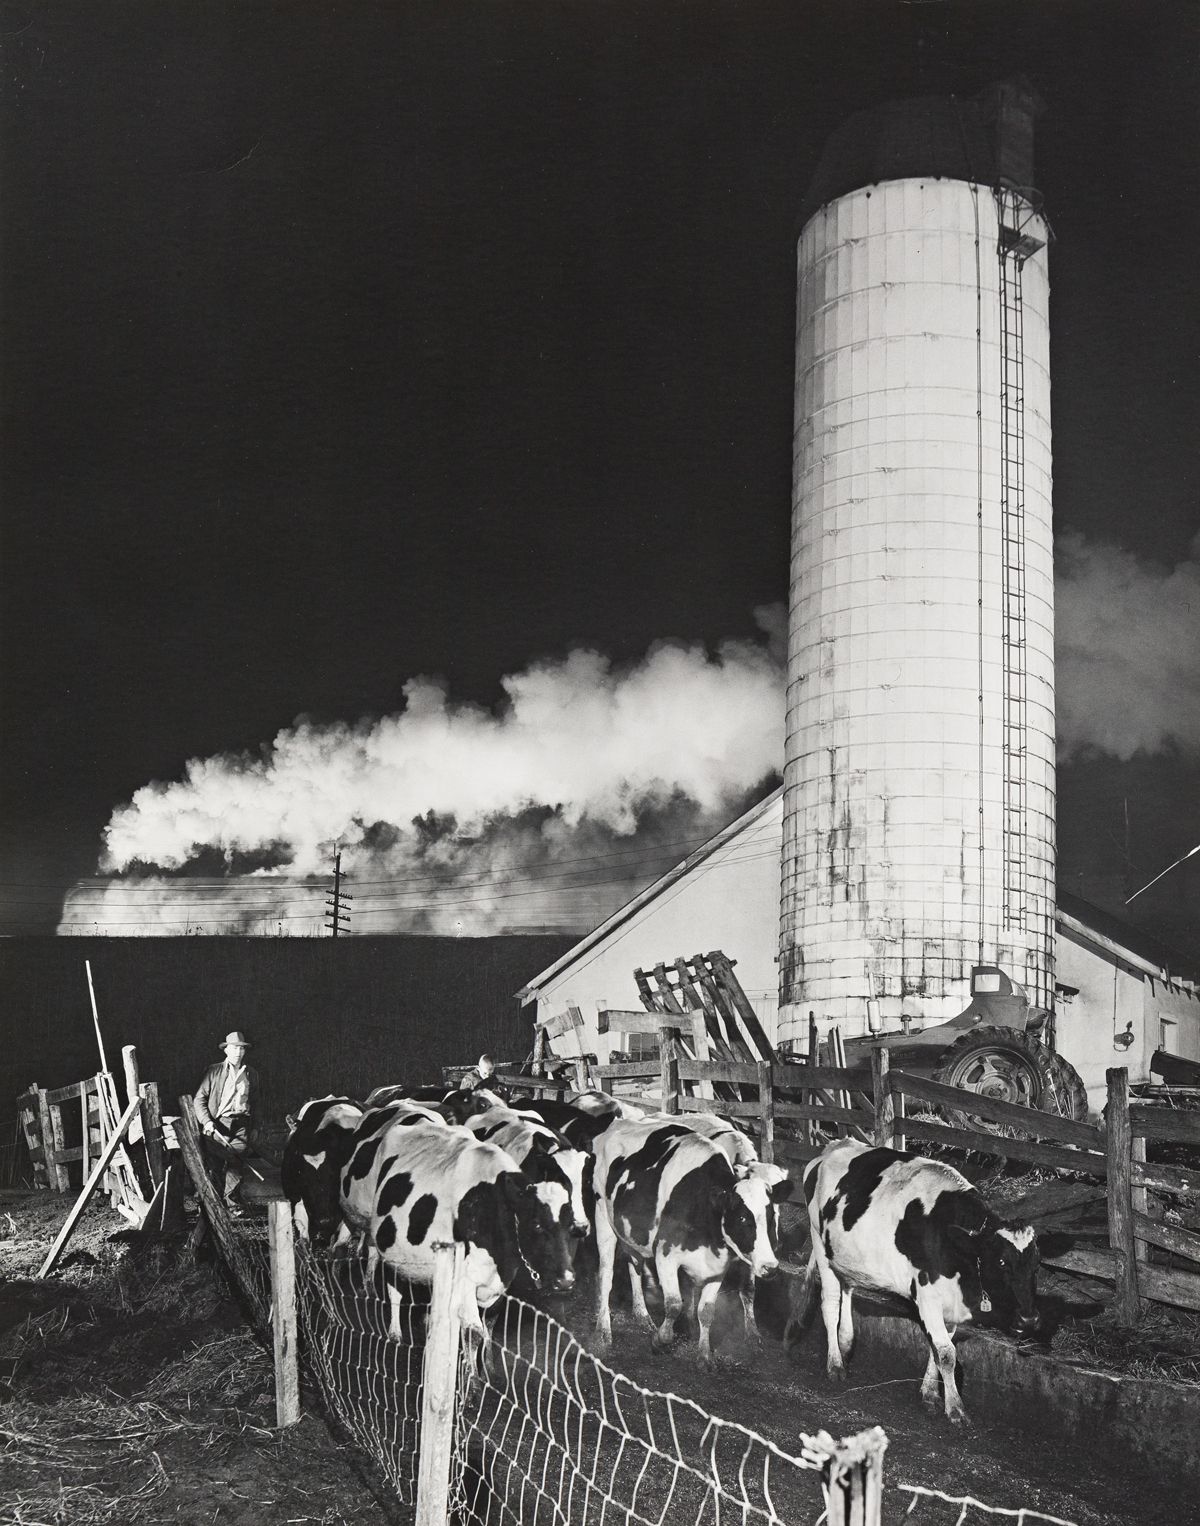 O. WINSTON LINK (1914-2001) Drivers (Drive Wheels), Bluefield Lubritorium, Bluefield, West Virginia, NW 86 * Bringing in the Cows, Trai